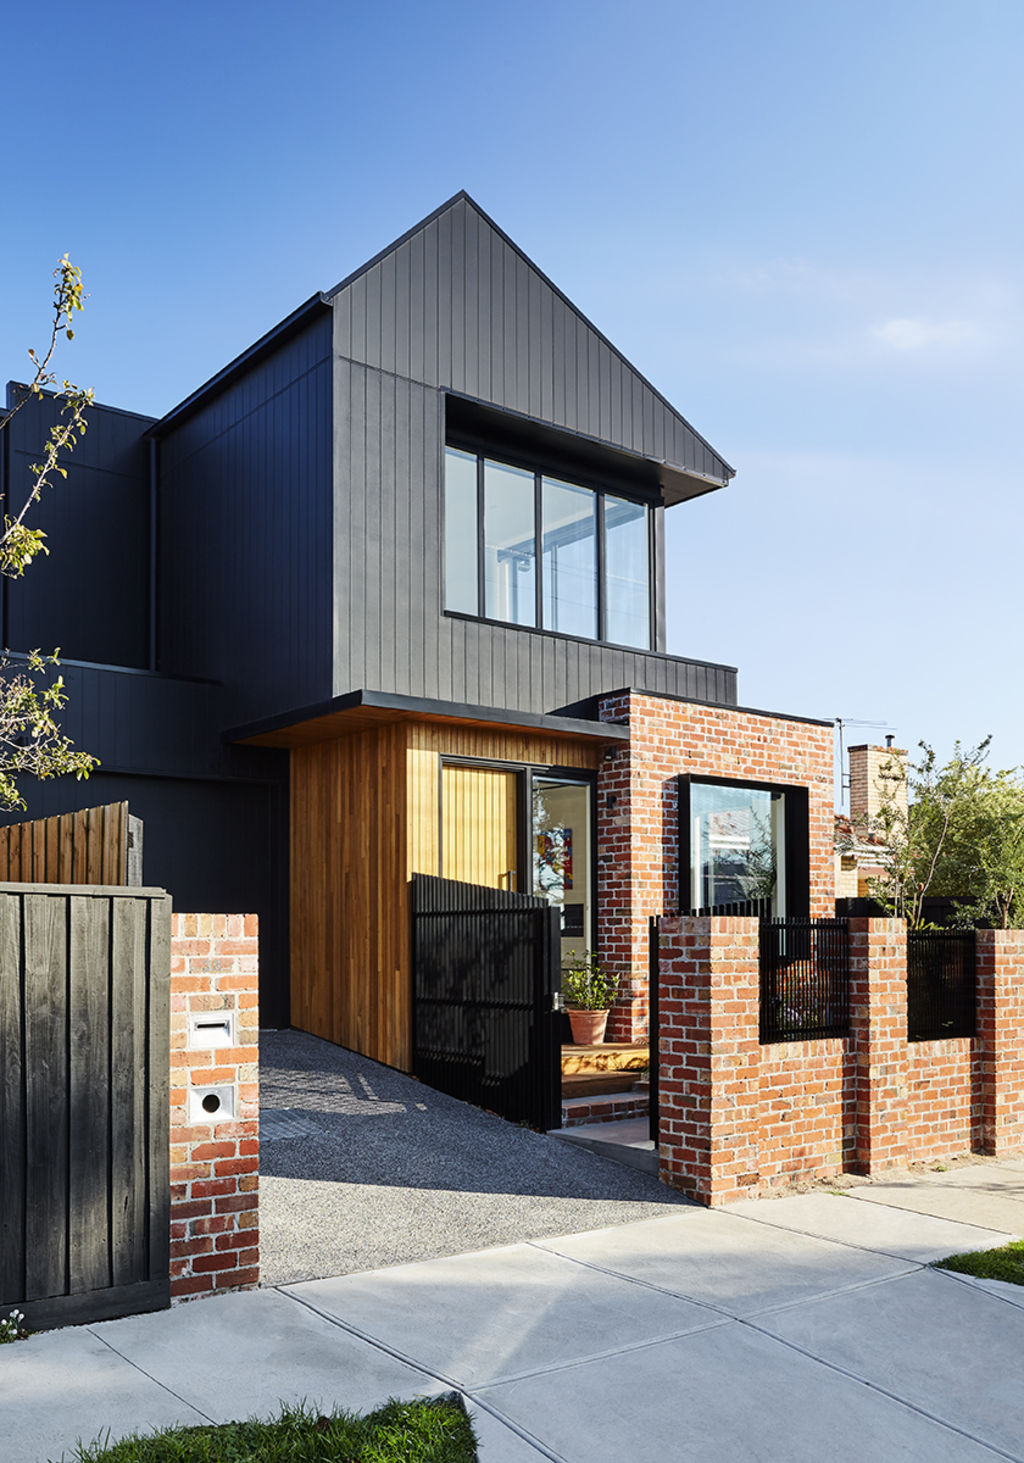 This_smart_new_townhouse_shows_there_are_other_ways_to_do_suburban_infill._pix_Tess_Kelly_hgfqj1